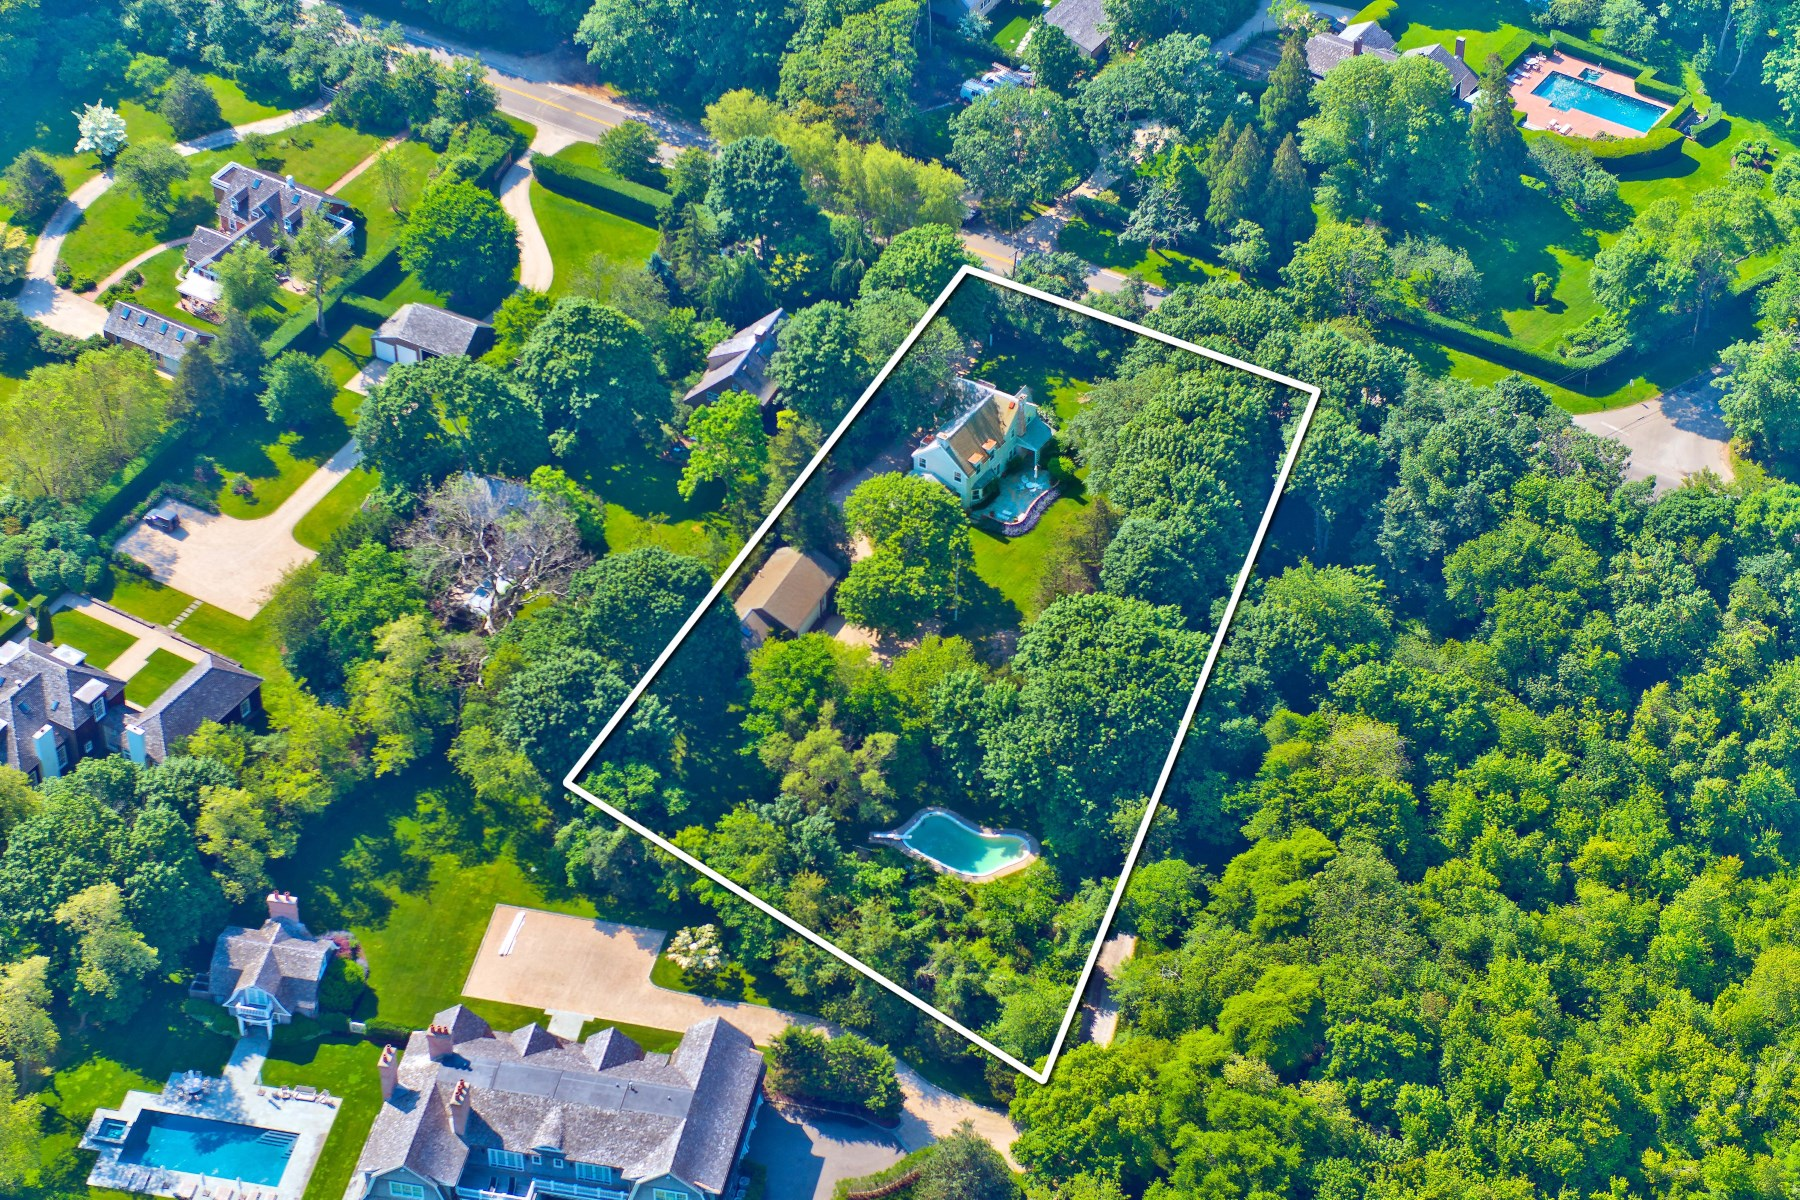 Single Family Home for Sale at 1+/- Acres, Bridgehampton South Bridgehampton, New York 11932 United States